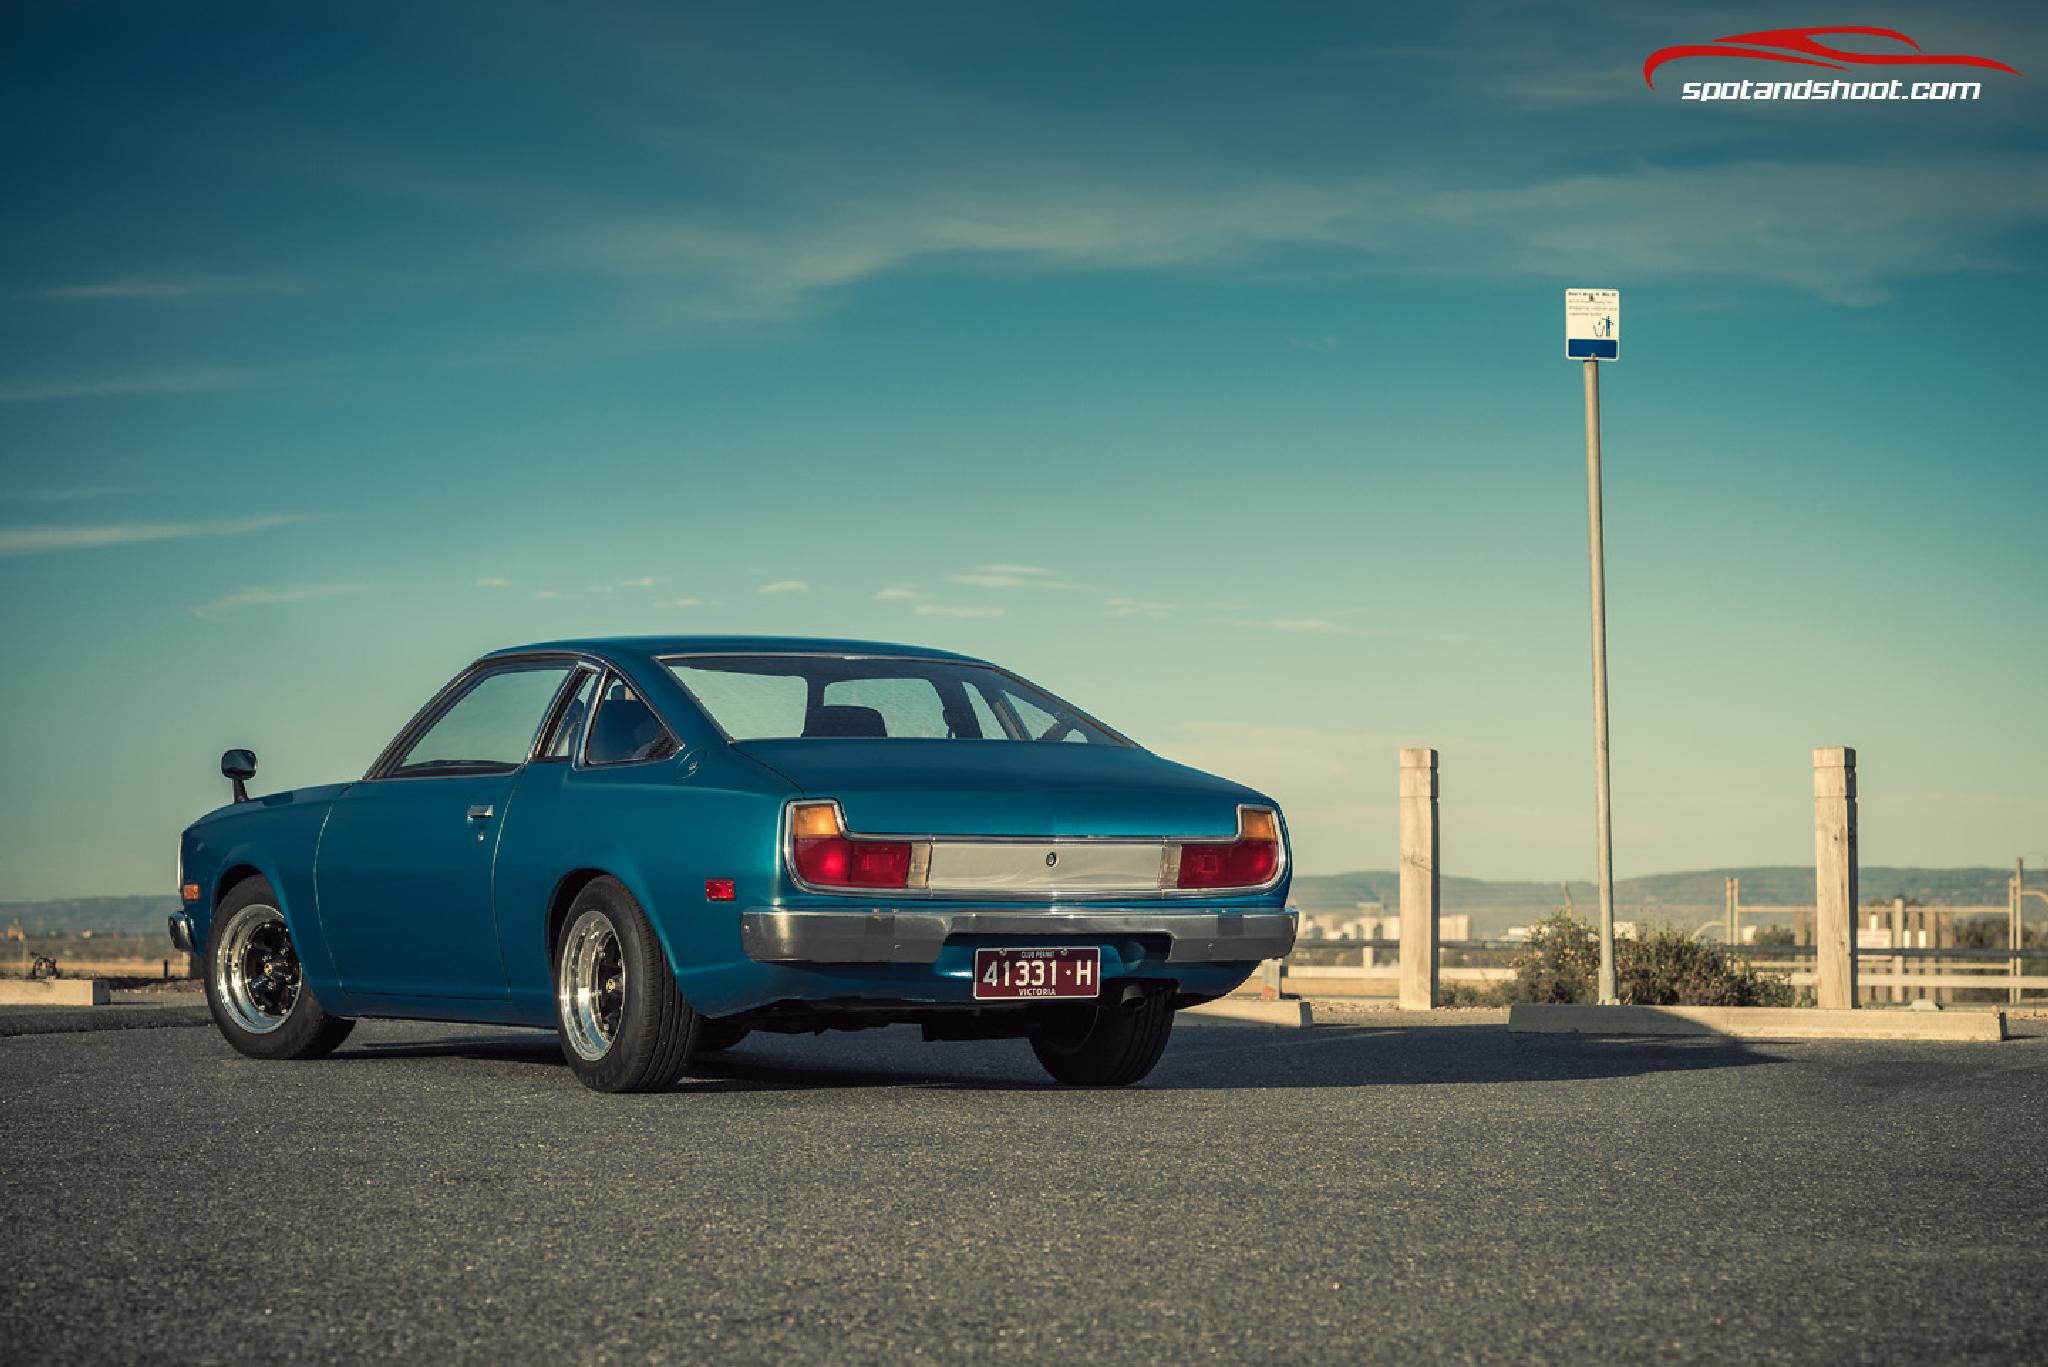 1977 Mazda 121 Coupe by Andrey Moisseyev Photographer